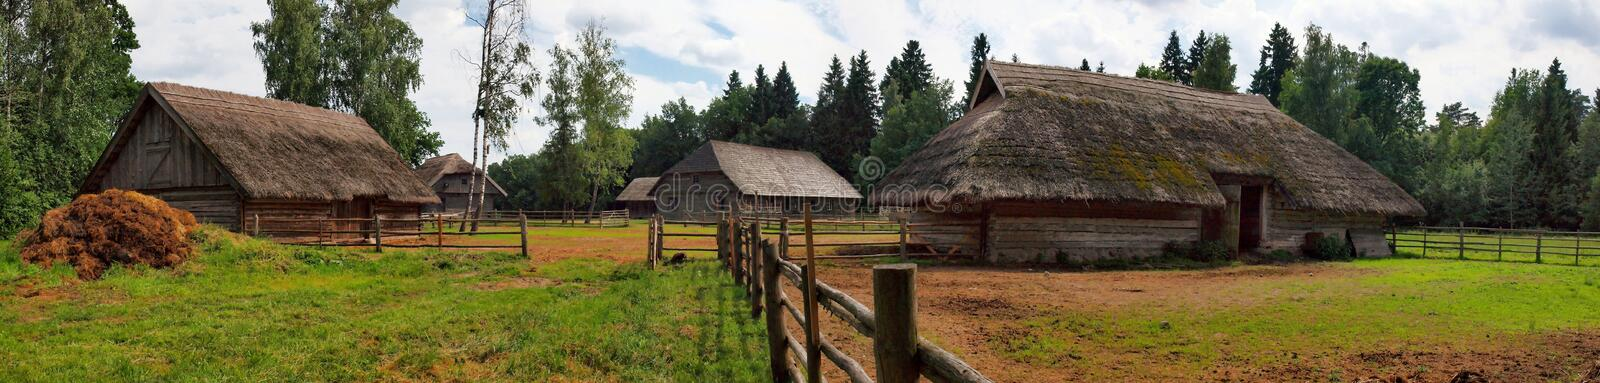 Typical, ethnographic wooden house stock photo